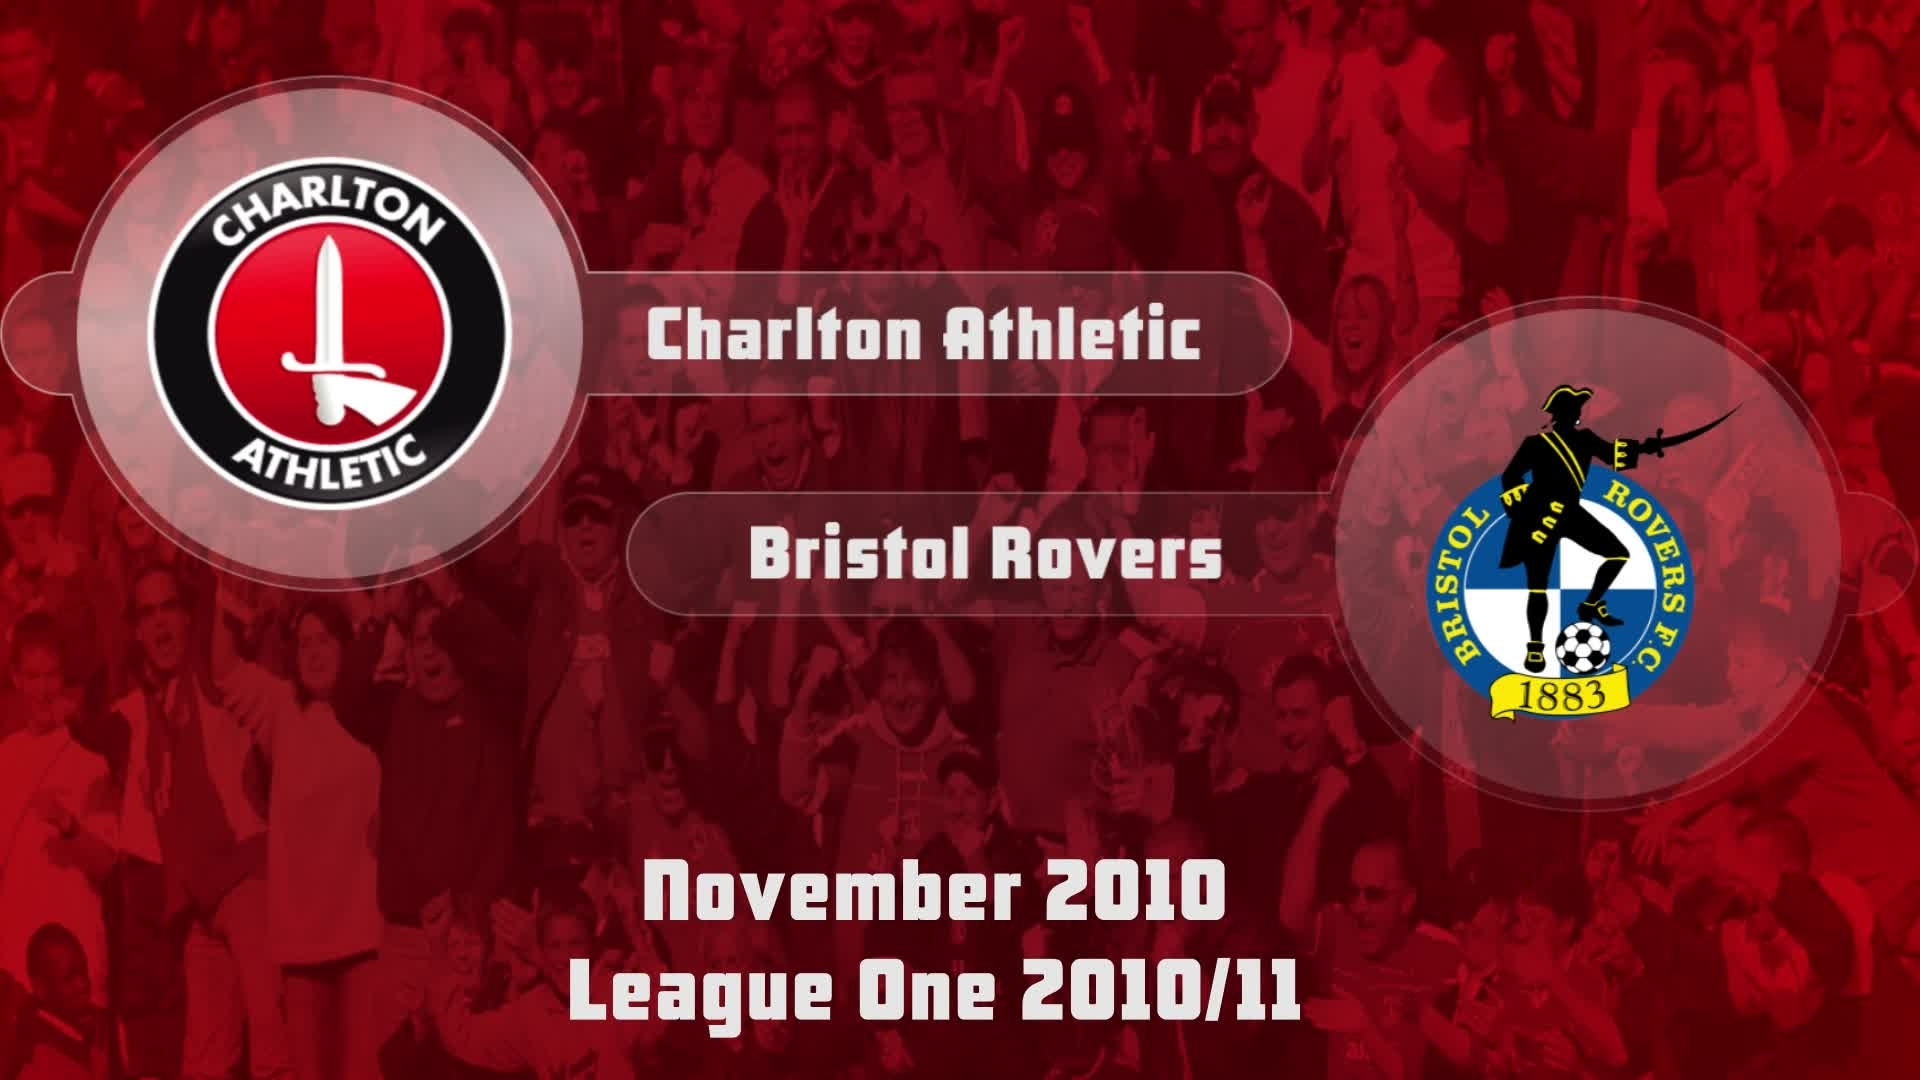 24 HIGHLIGHTS | Charlton 1 Bristol Rovers 1 (Nov 2010)